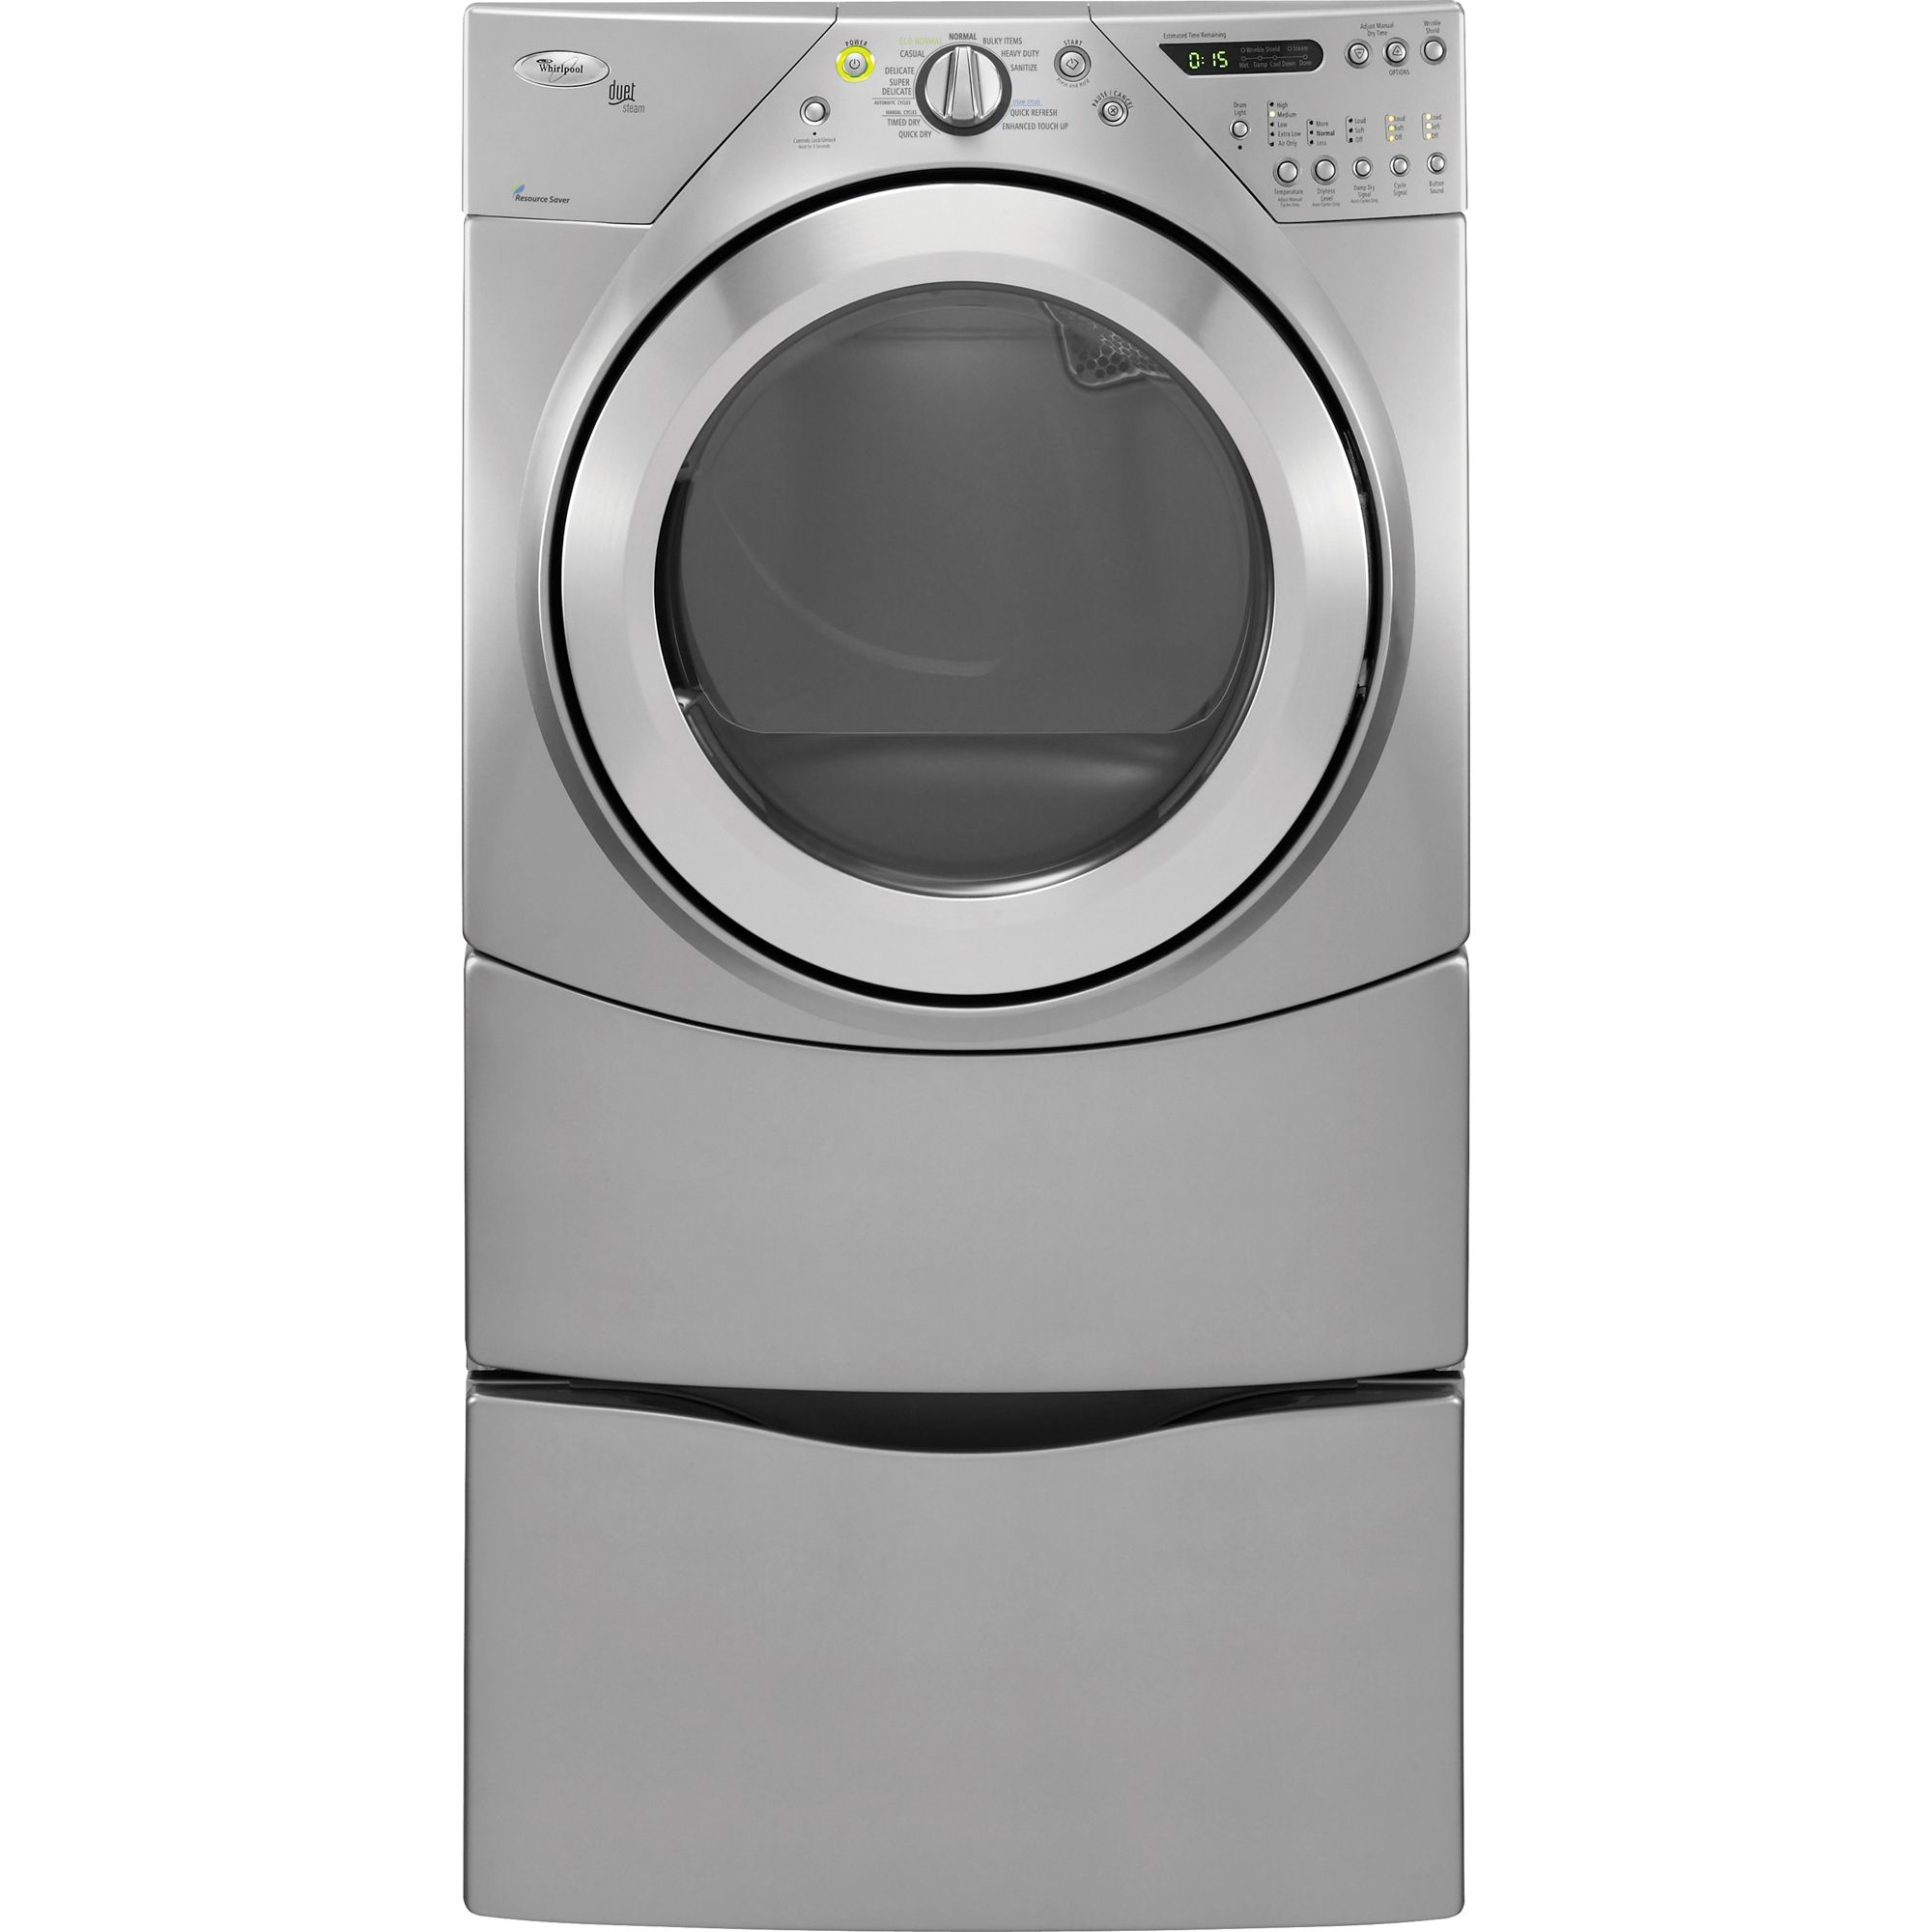 Whirlpool Duet® 7.2 cu. ft. Gas Steam Dryer